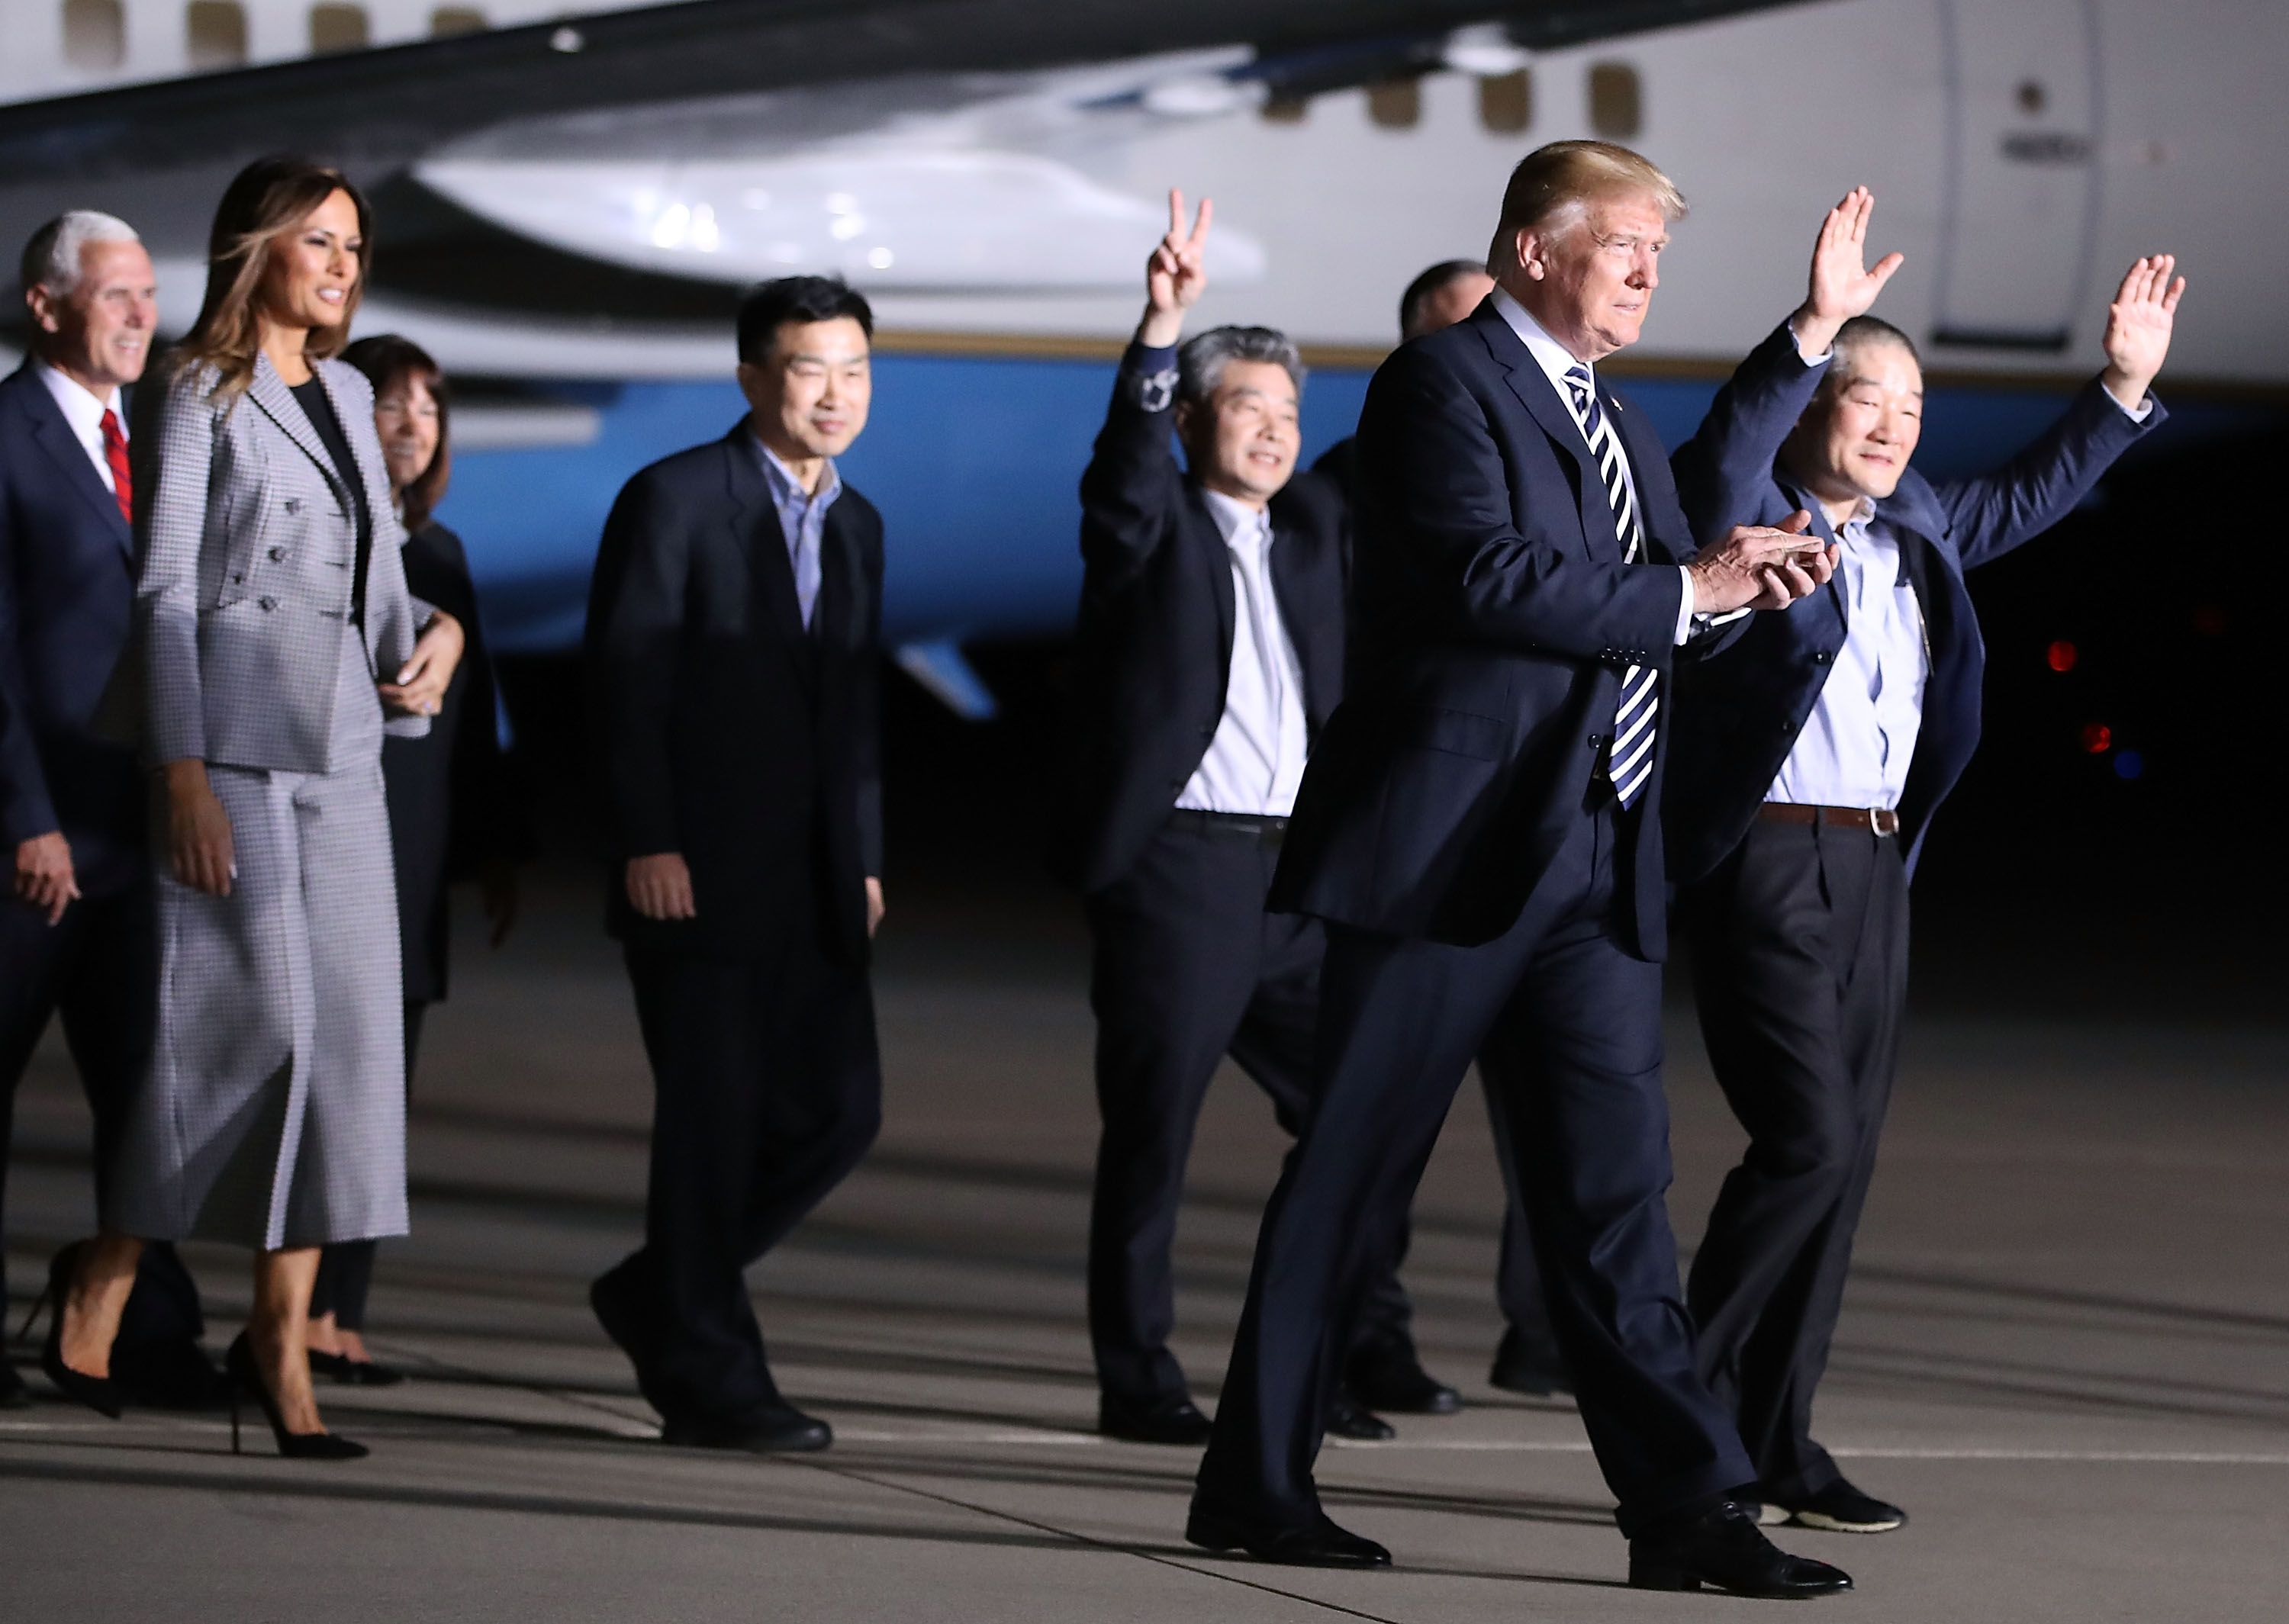 JOINT BASE ANDREWS, MD - MAY 10:  U.S. President Donald Trump walks with the three Americans just released from North Korea, Kim Dong Chul, Kim Hak-song and Tony Kim at Joint Base Andrews on May 9, 2018  in Maryland.  Secretary of State Mike Pompeo traveled to North Korea and returned with the three men who have been detained in North Korea.  (Photo by Mark Wilson/Getty Images)